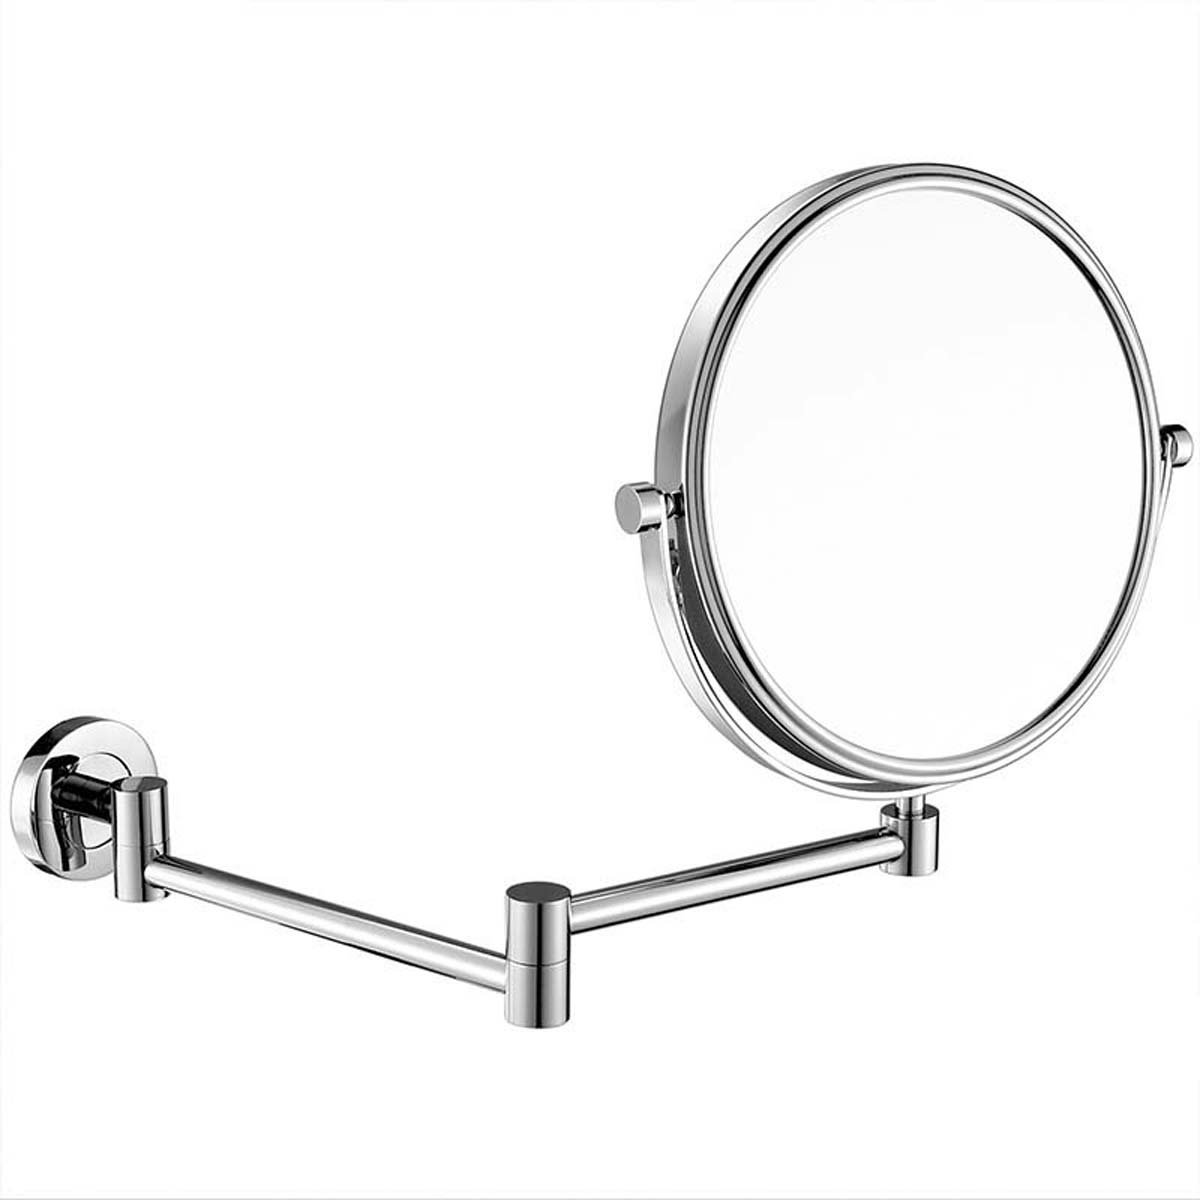 J&A Cosmetic mirror, bronze 3x magnifying mirror, folding bathroom shaving mirror, concealed light base by J&A